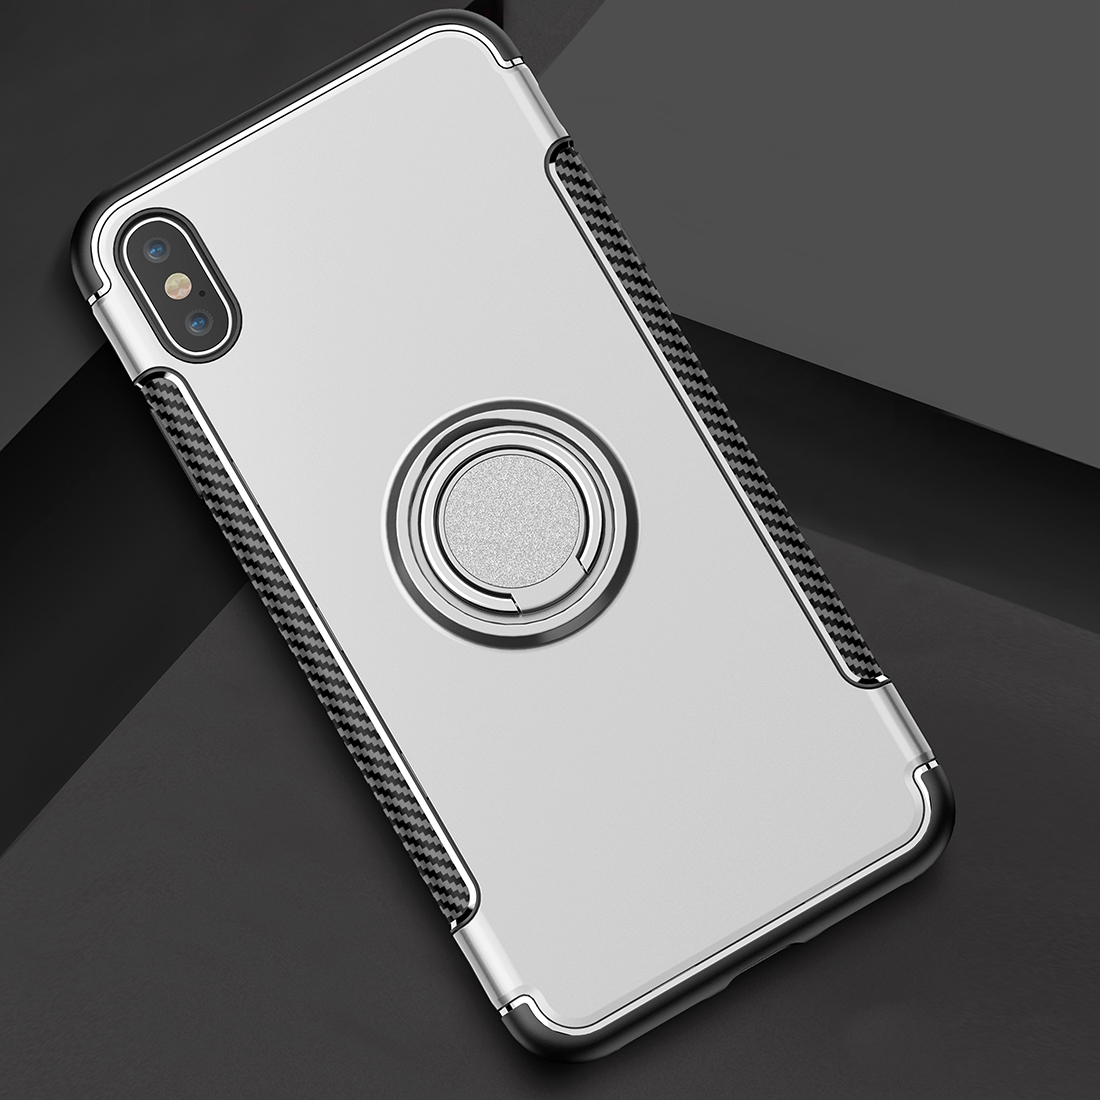 Magnetic 360 Degrees Rotation Ring Armor Protective Case for iPhone XS Max  (Silver)